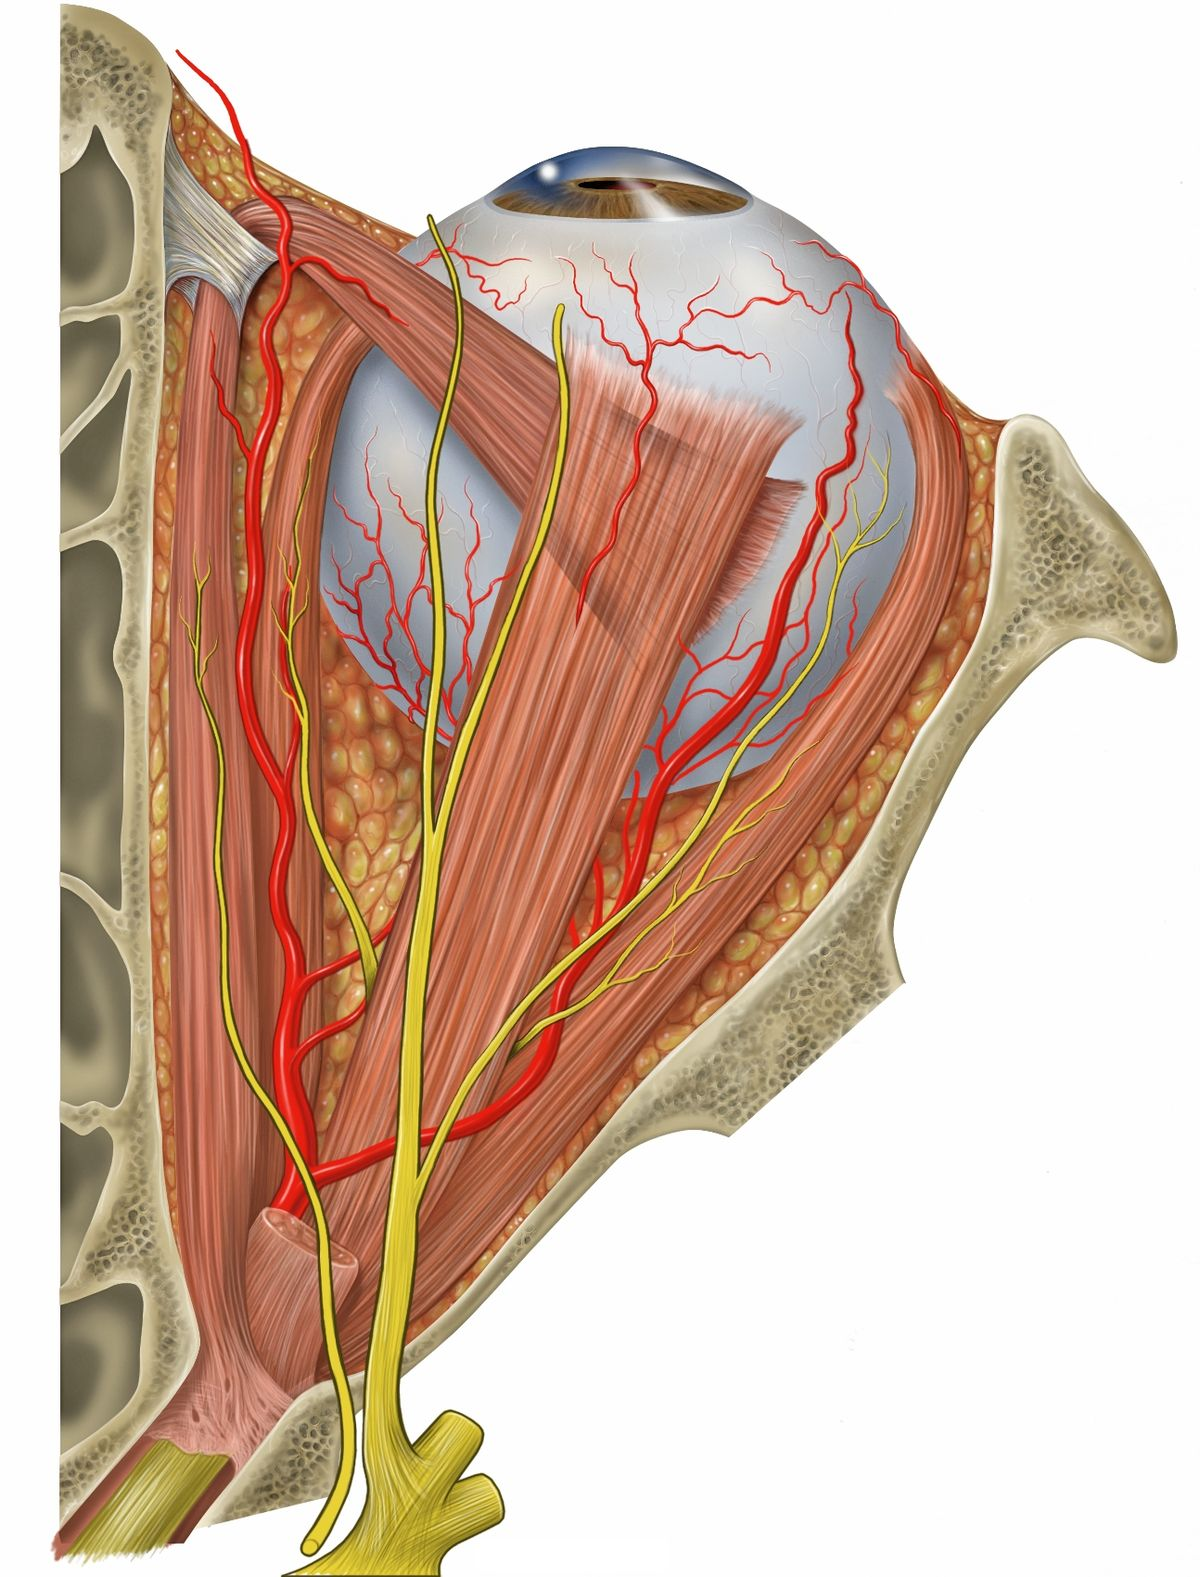 Superior rectus muscle - Wikipedia